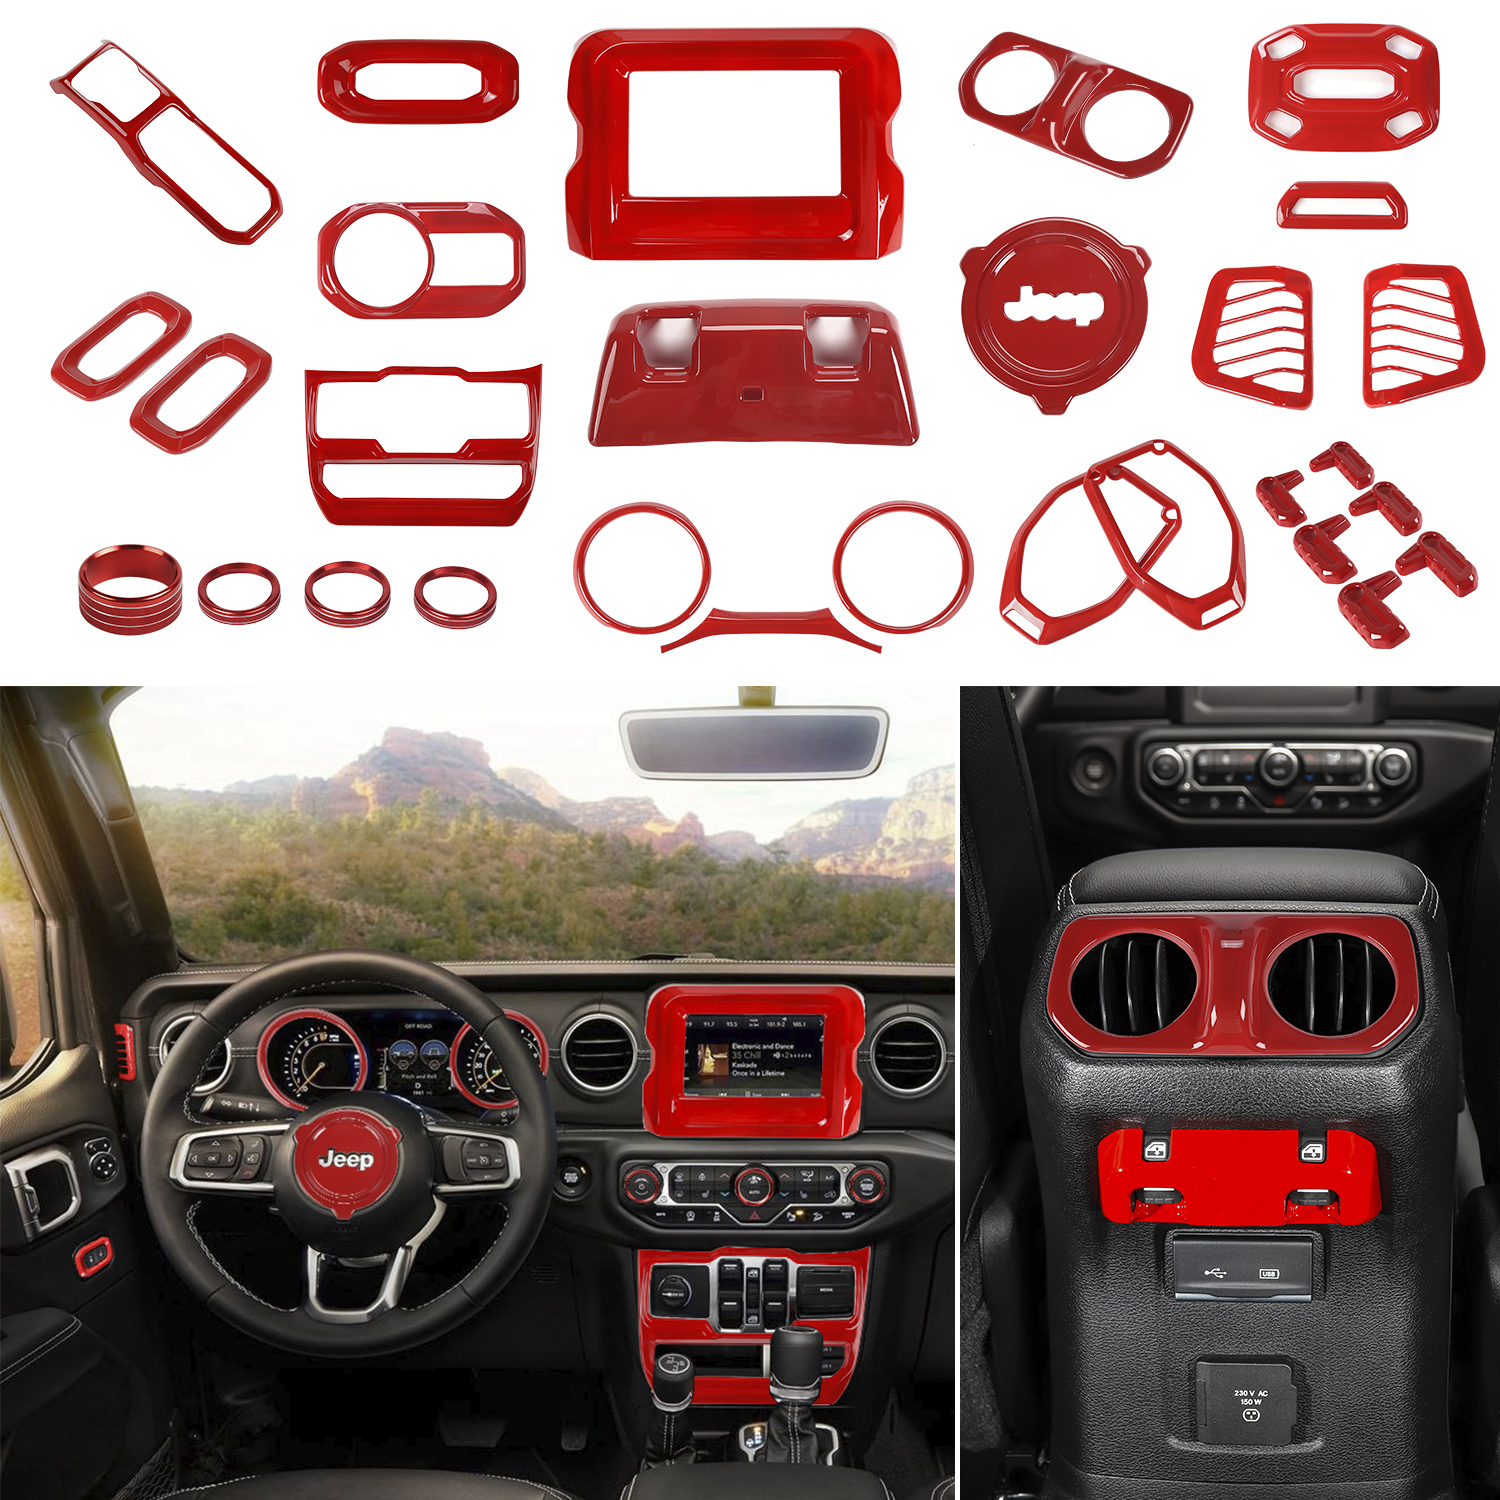 NO7RUBAN Carbon Fiber Style Full Set Interior Decoration Cover Trim for Jeep Wrangler JL 2018 Door Handle bowl,Center Console,Gear Shift,Air Outlet,Headlight Gear Shift Pane Control Center Console